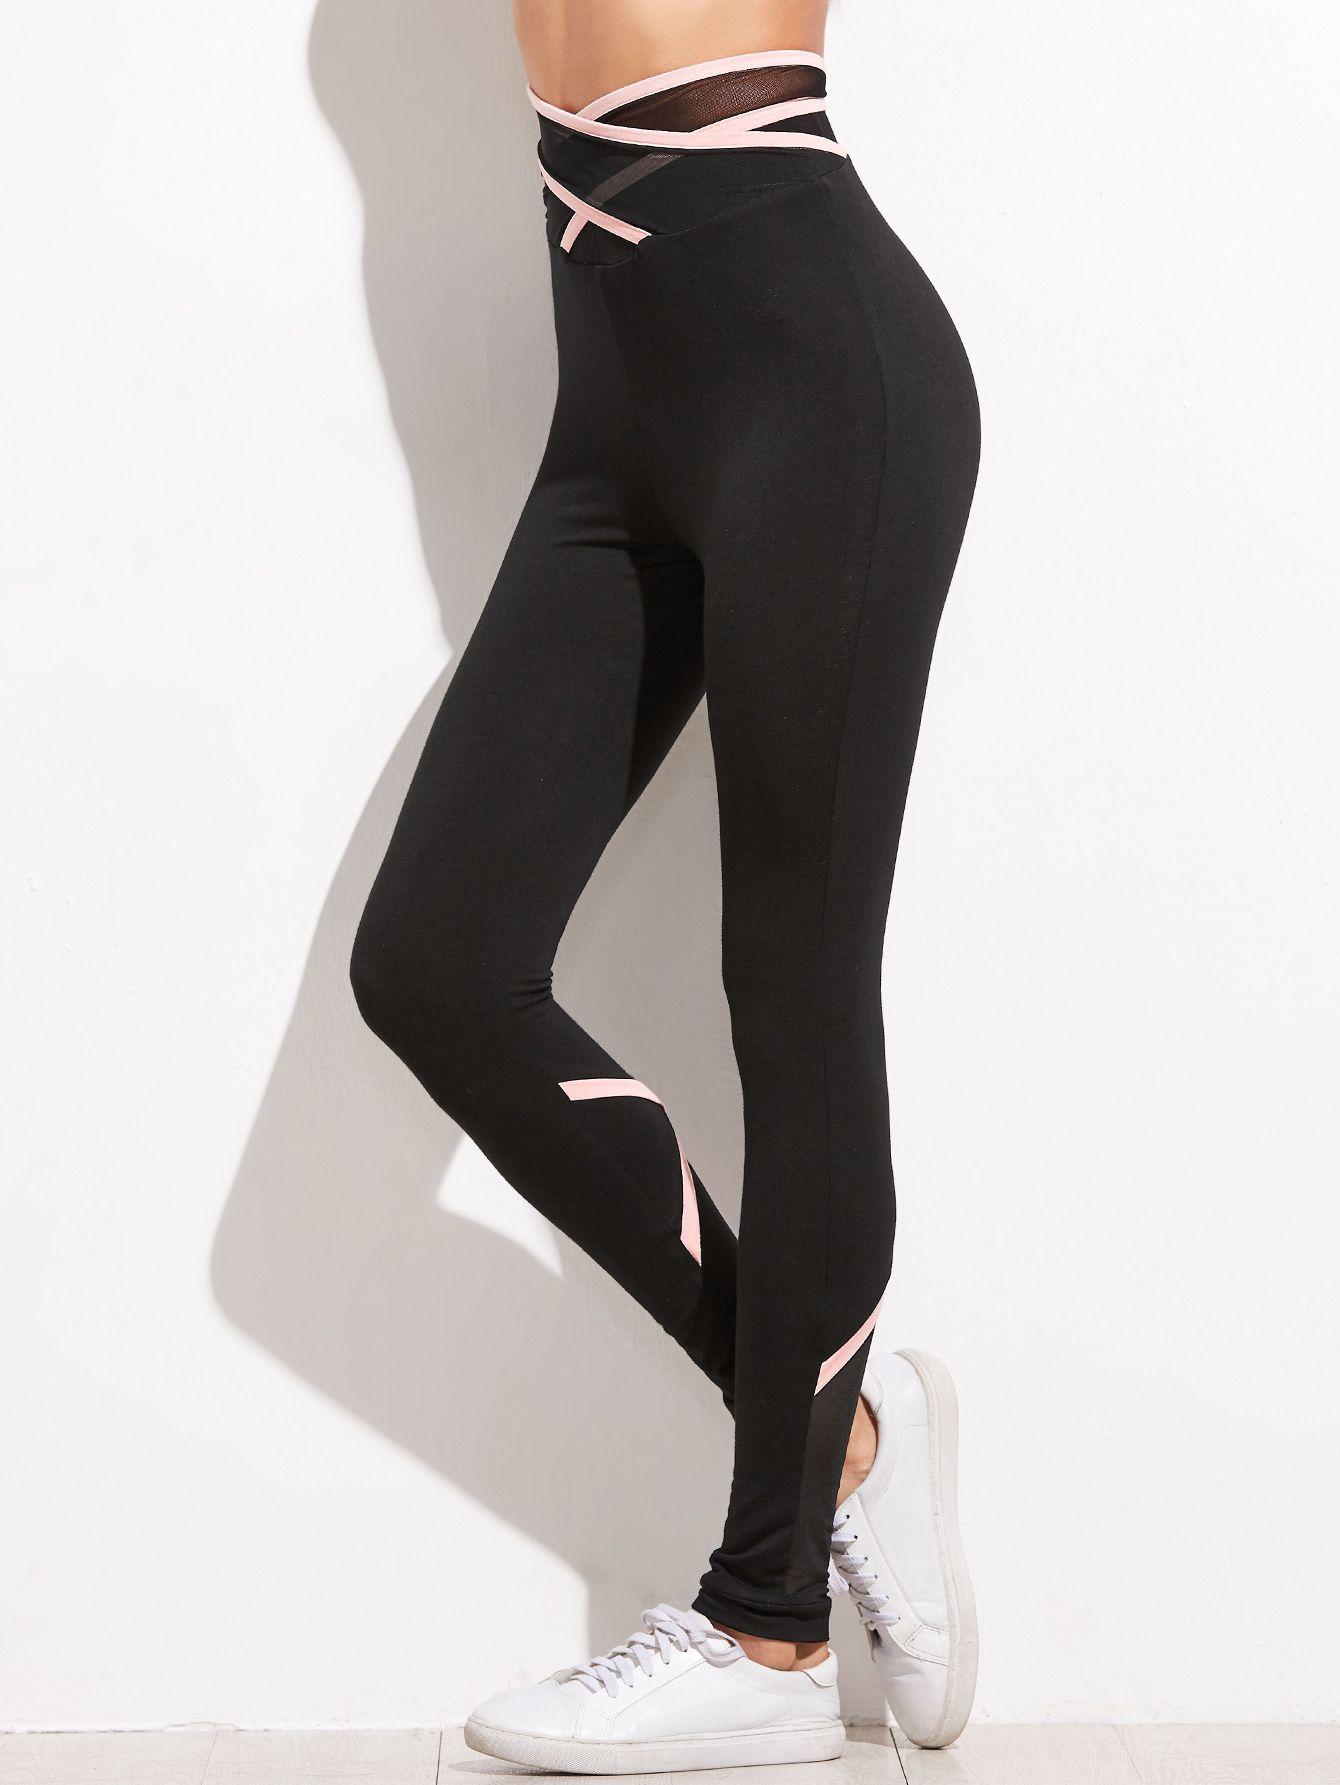 eb036ed55d44 Shop Black Crisscross Mesh Waist And Back Leggings online. SheIn offers  Black Crisscross Mesh Waist And Back Leggings & more to fit your  fashionable needs.